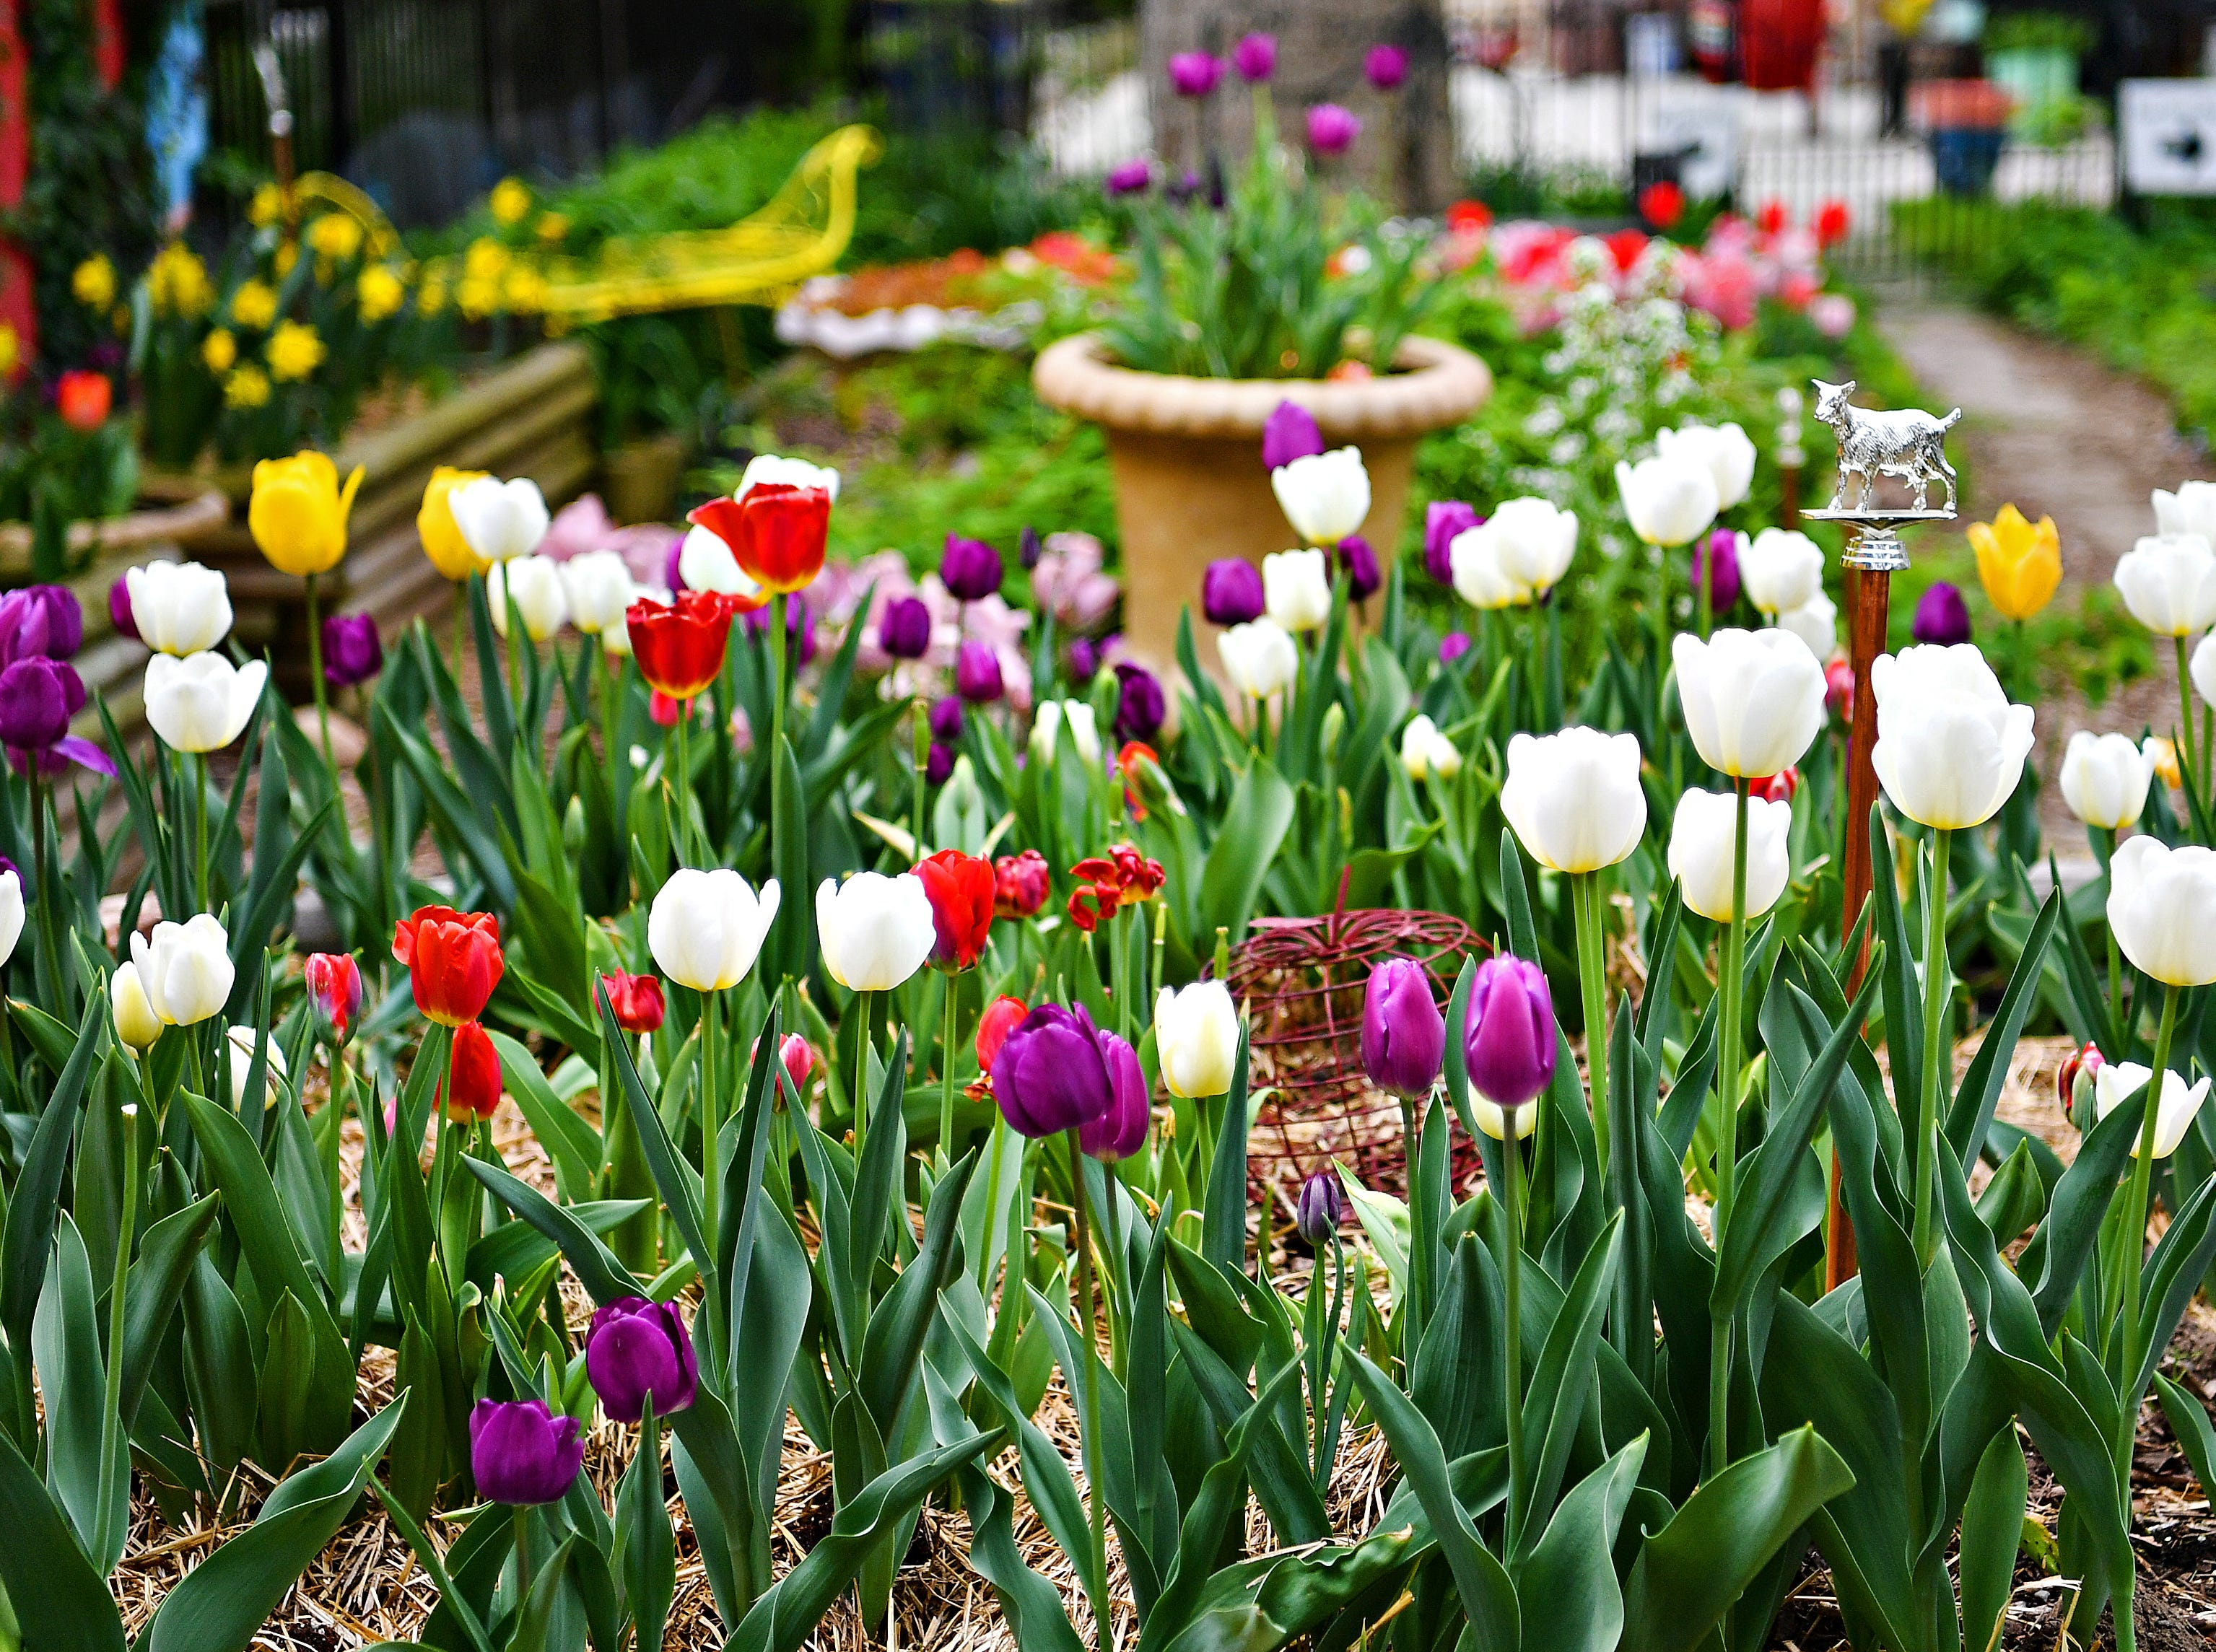 Tulips bloom at Royal Square Garden in York City, Wednesday, May 1, 2019. Dawn J. Sagert photo